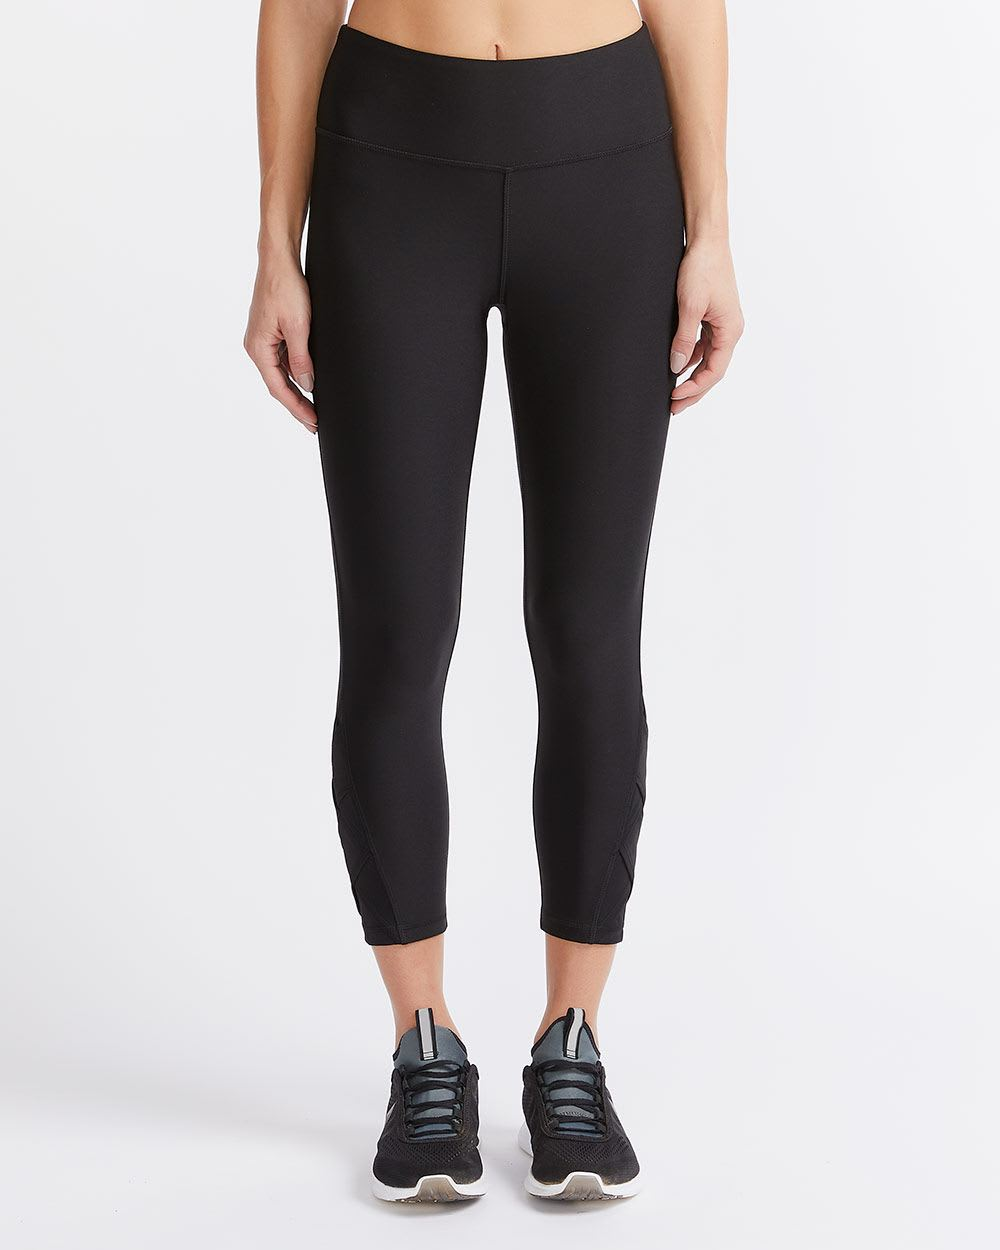 Hyba Lattice Cropped Legging